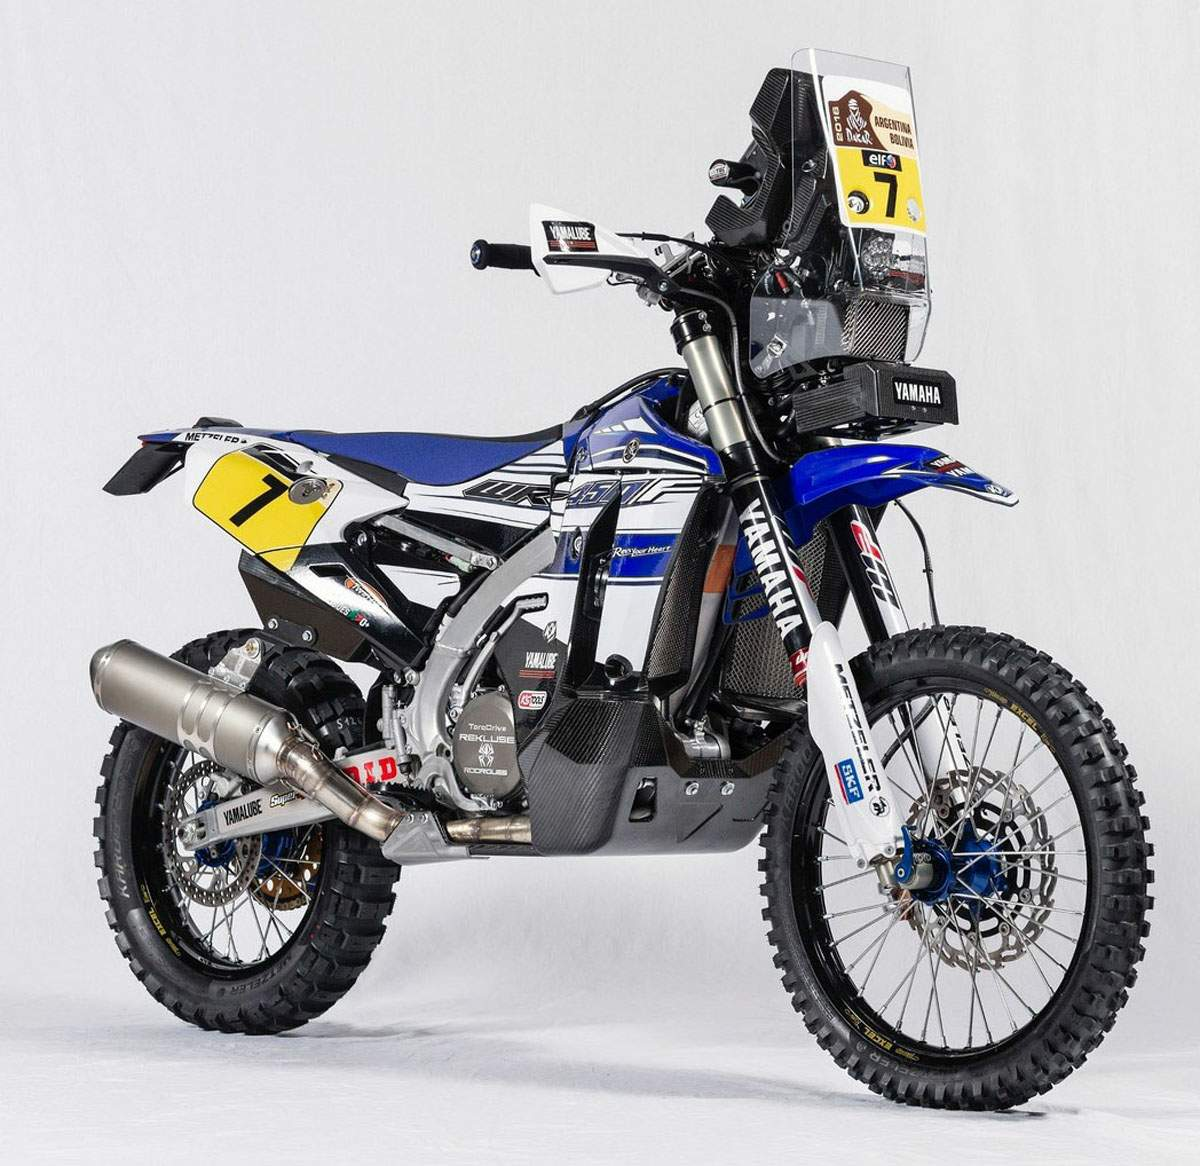 Мотоцикл Yamaha WR 450F Rally 2016